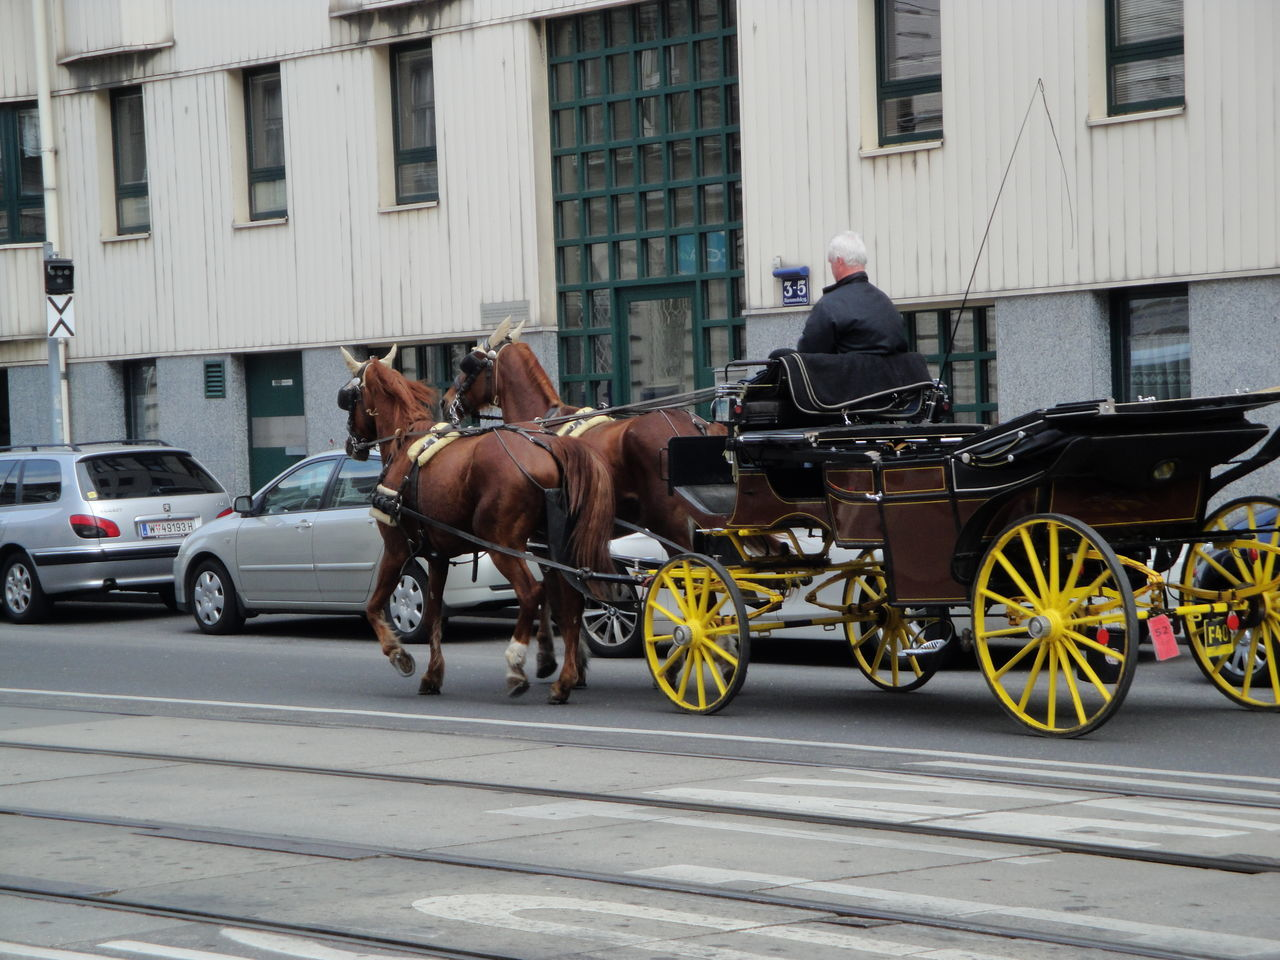 Wien / Vienna, Austria Architecture Building Exterior Built Structure City Day Domestic Animals Horse Horse Cart Horsedrawn Land Vehicle Mammal Men Mode Of Transport One Animal One Person Outdoors People Real People Street Transportation Vienna Wien Working Animal